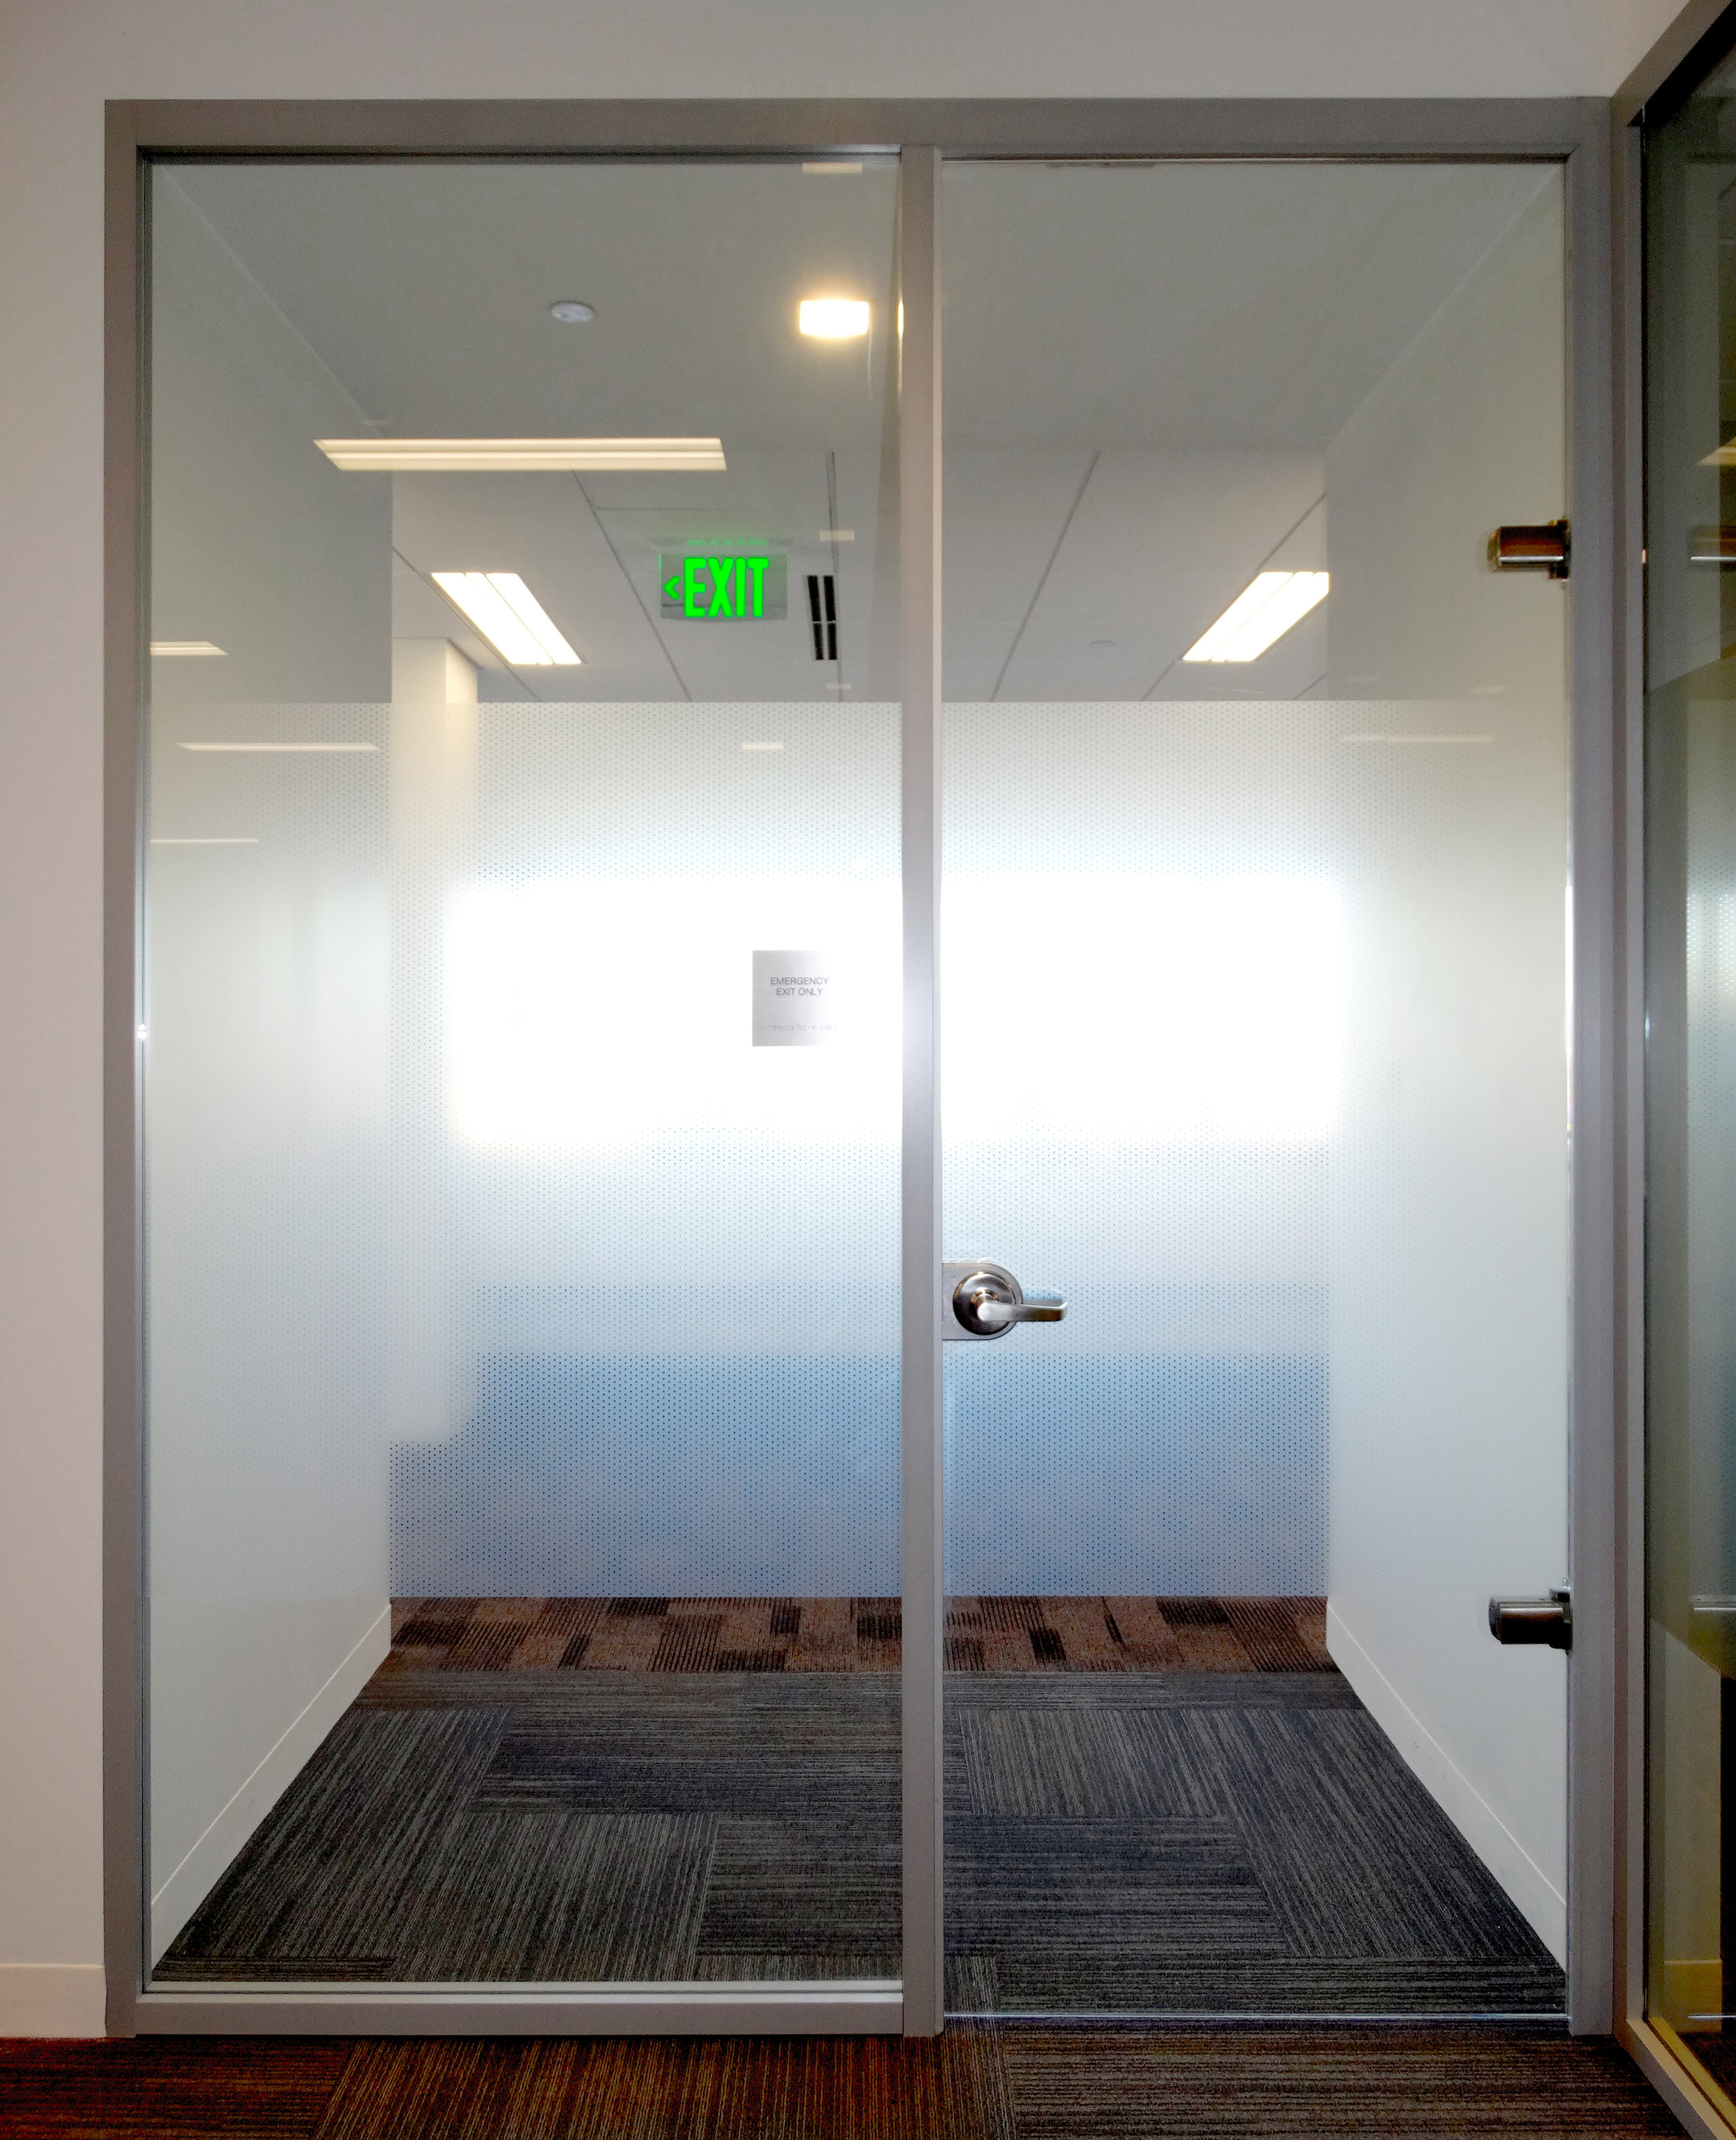 Litespace Frameless Glass Door Glass Mounted Lockset - Spaceworks AI.jpg